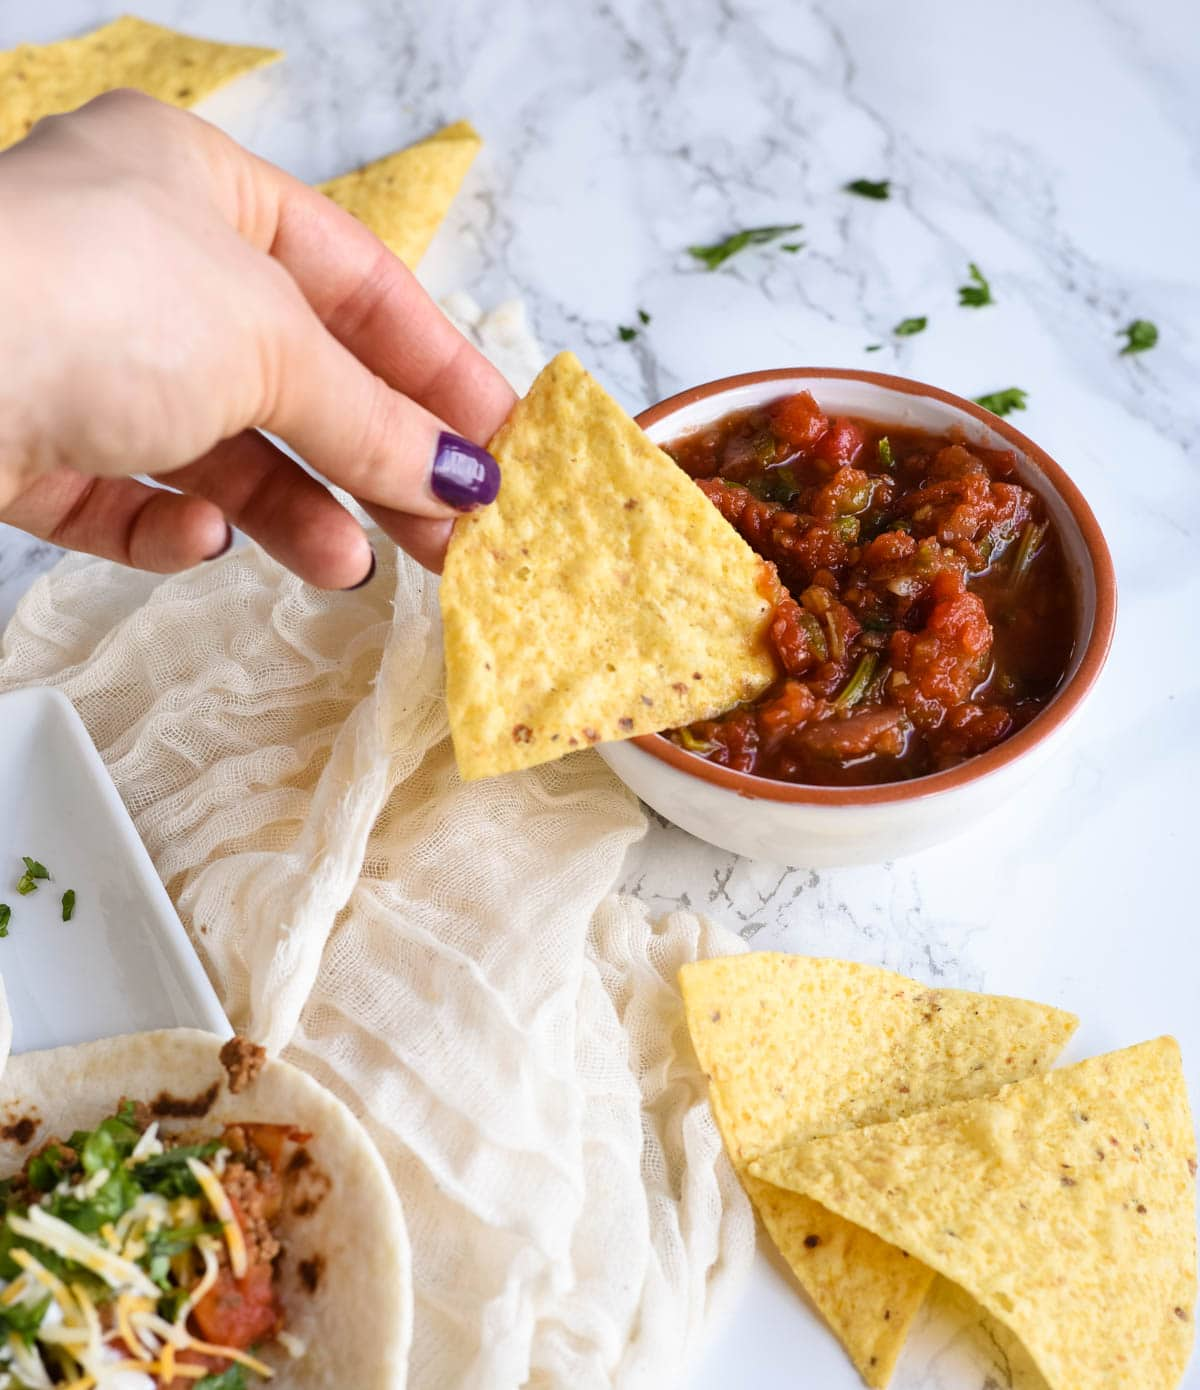 hand dipping chip into salsa